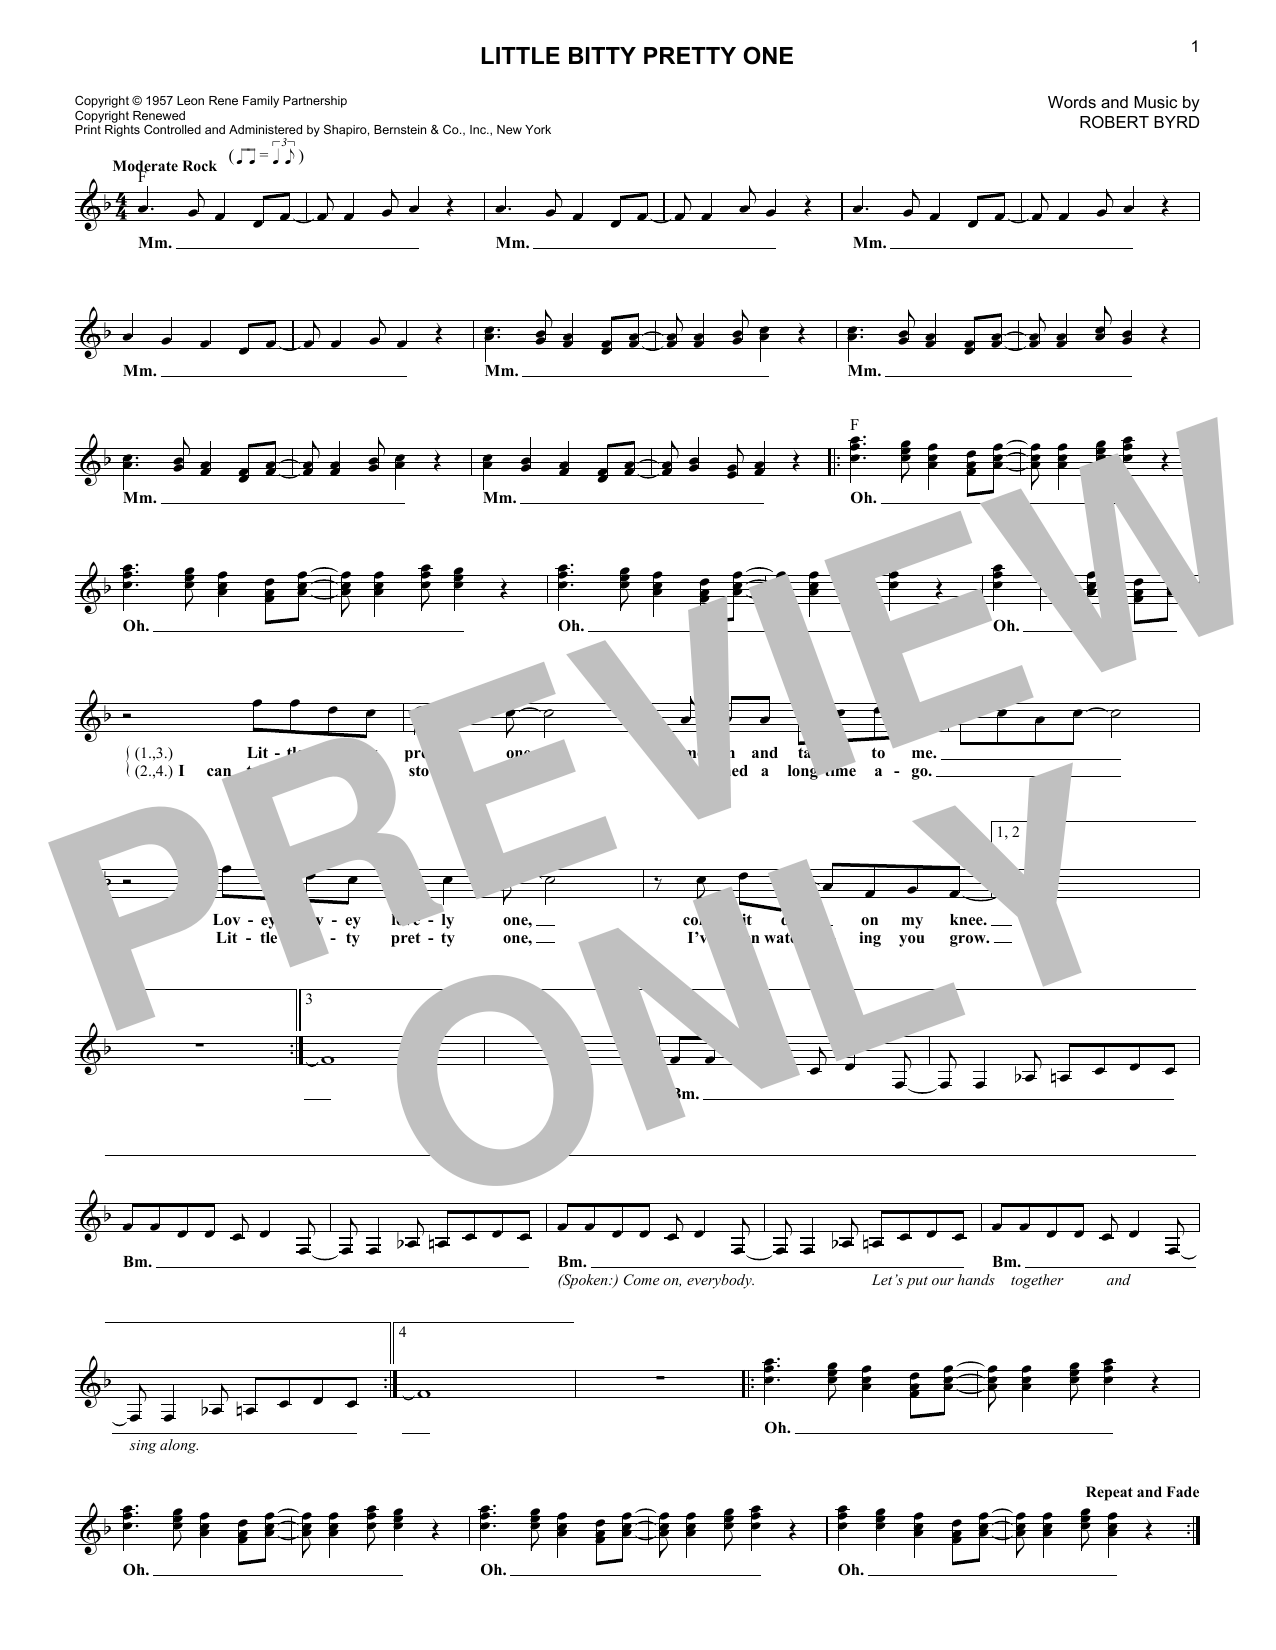 Jackson 5 Little Bitty Pretty One sheet music notes and chords. Download Printable PDF.